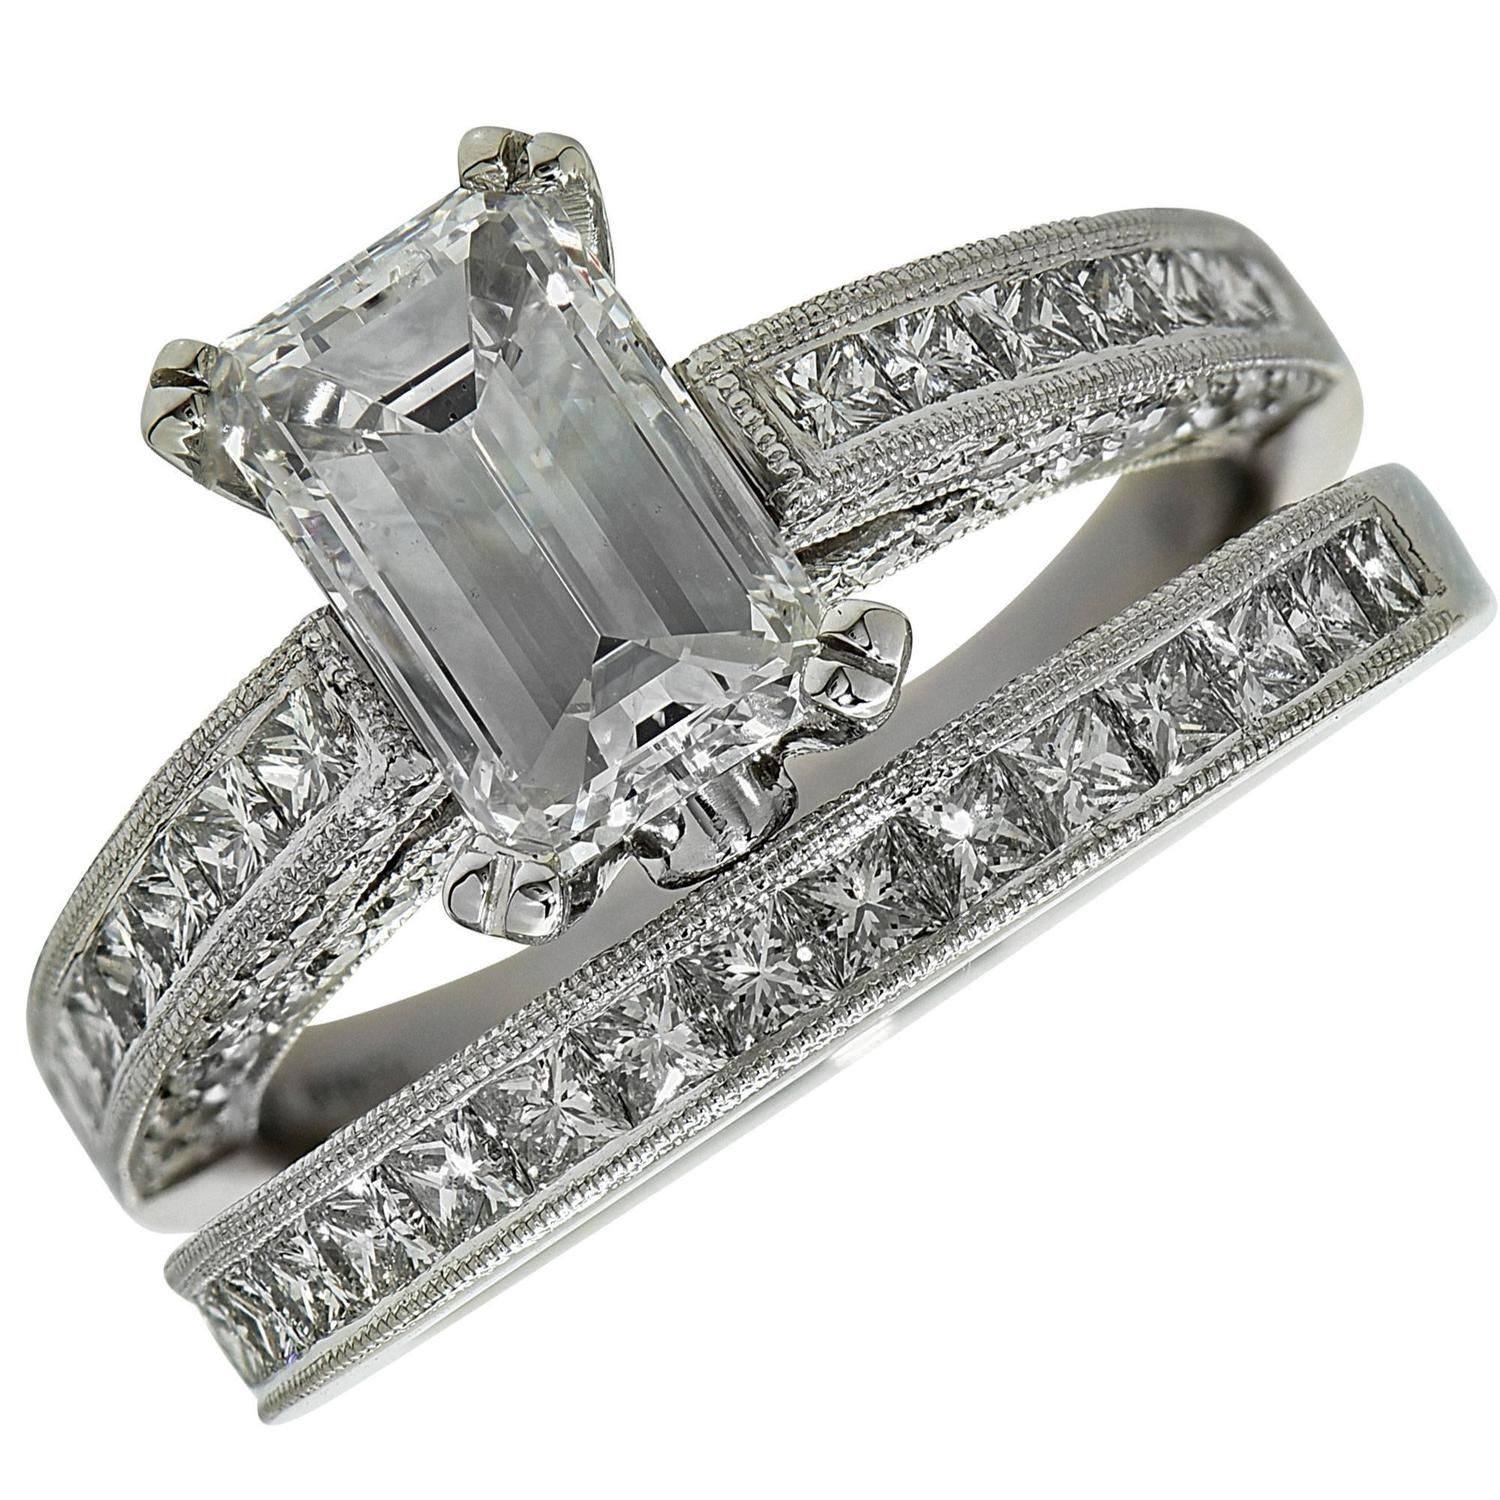 a rings jewelry distinguished specializing pin in engagement of fine designer brand natalie is fashion diamond k